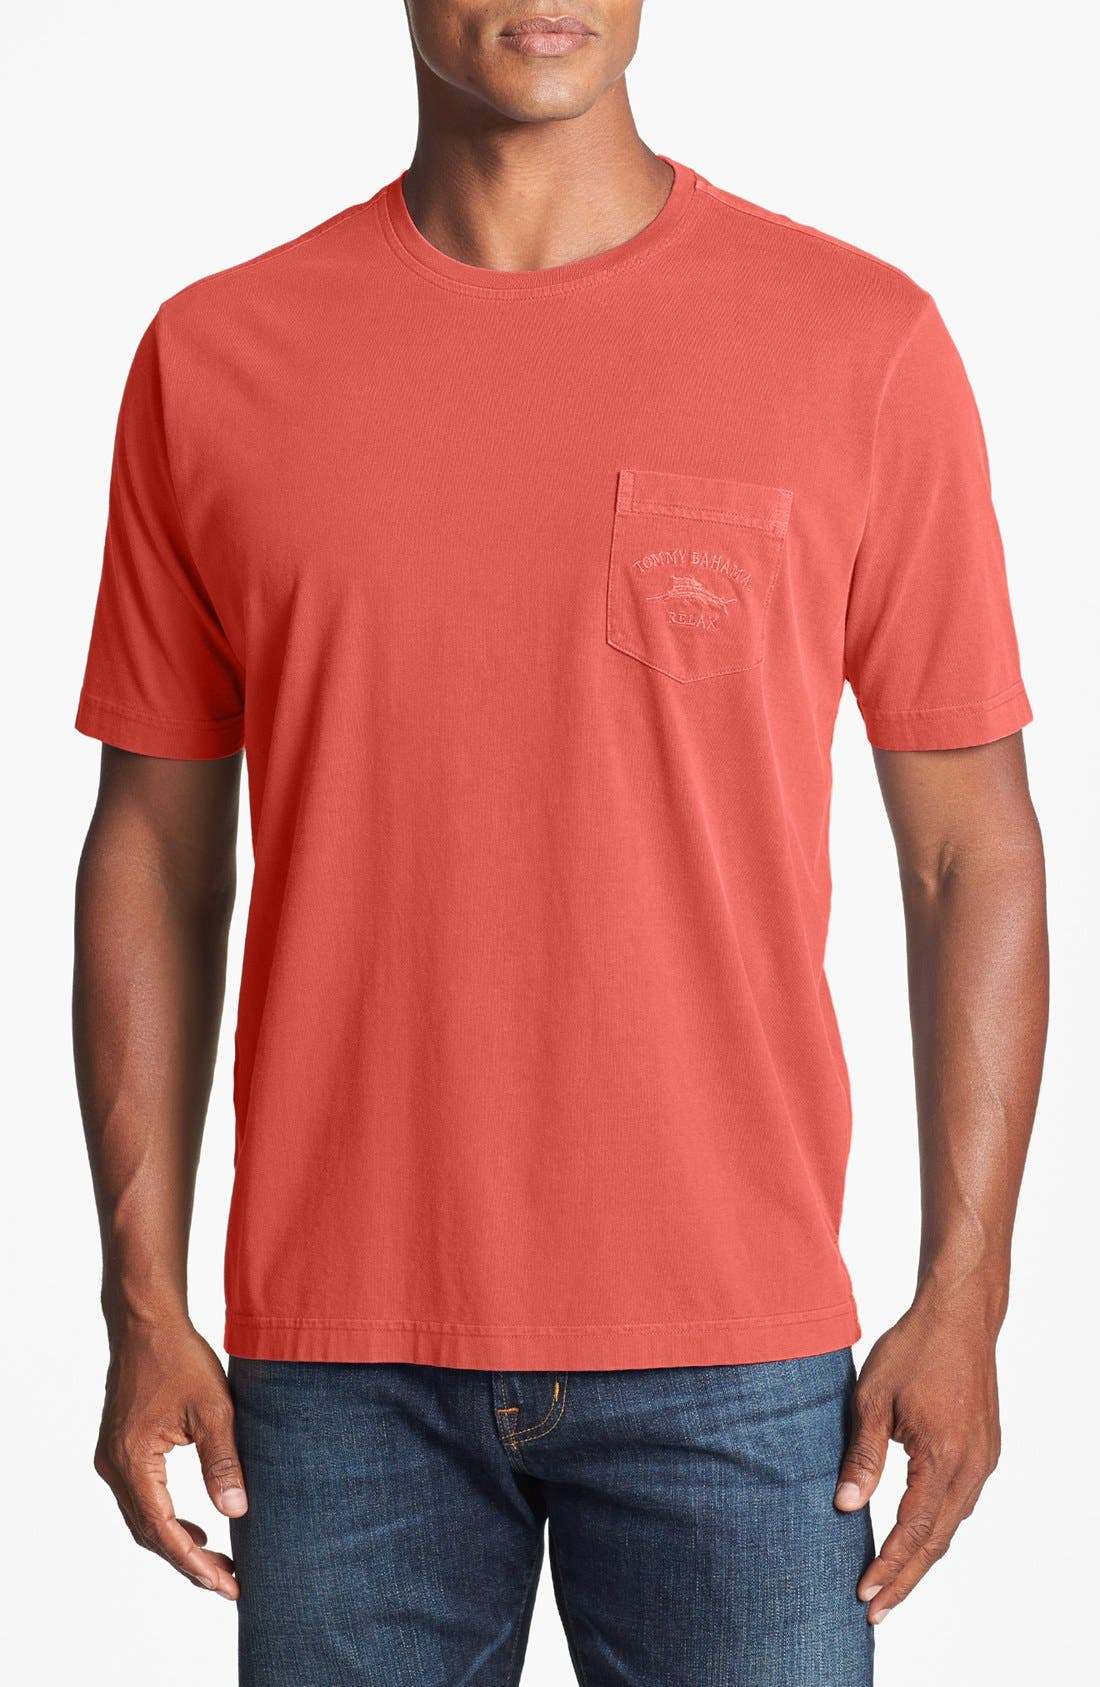 Main Image - Tommy Bahama Relax 'Bahama Tide' Island Modern Fit Short Sleeve T-Shirt